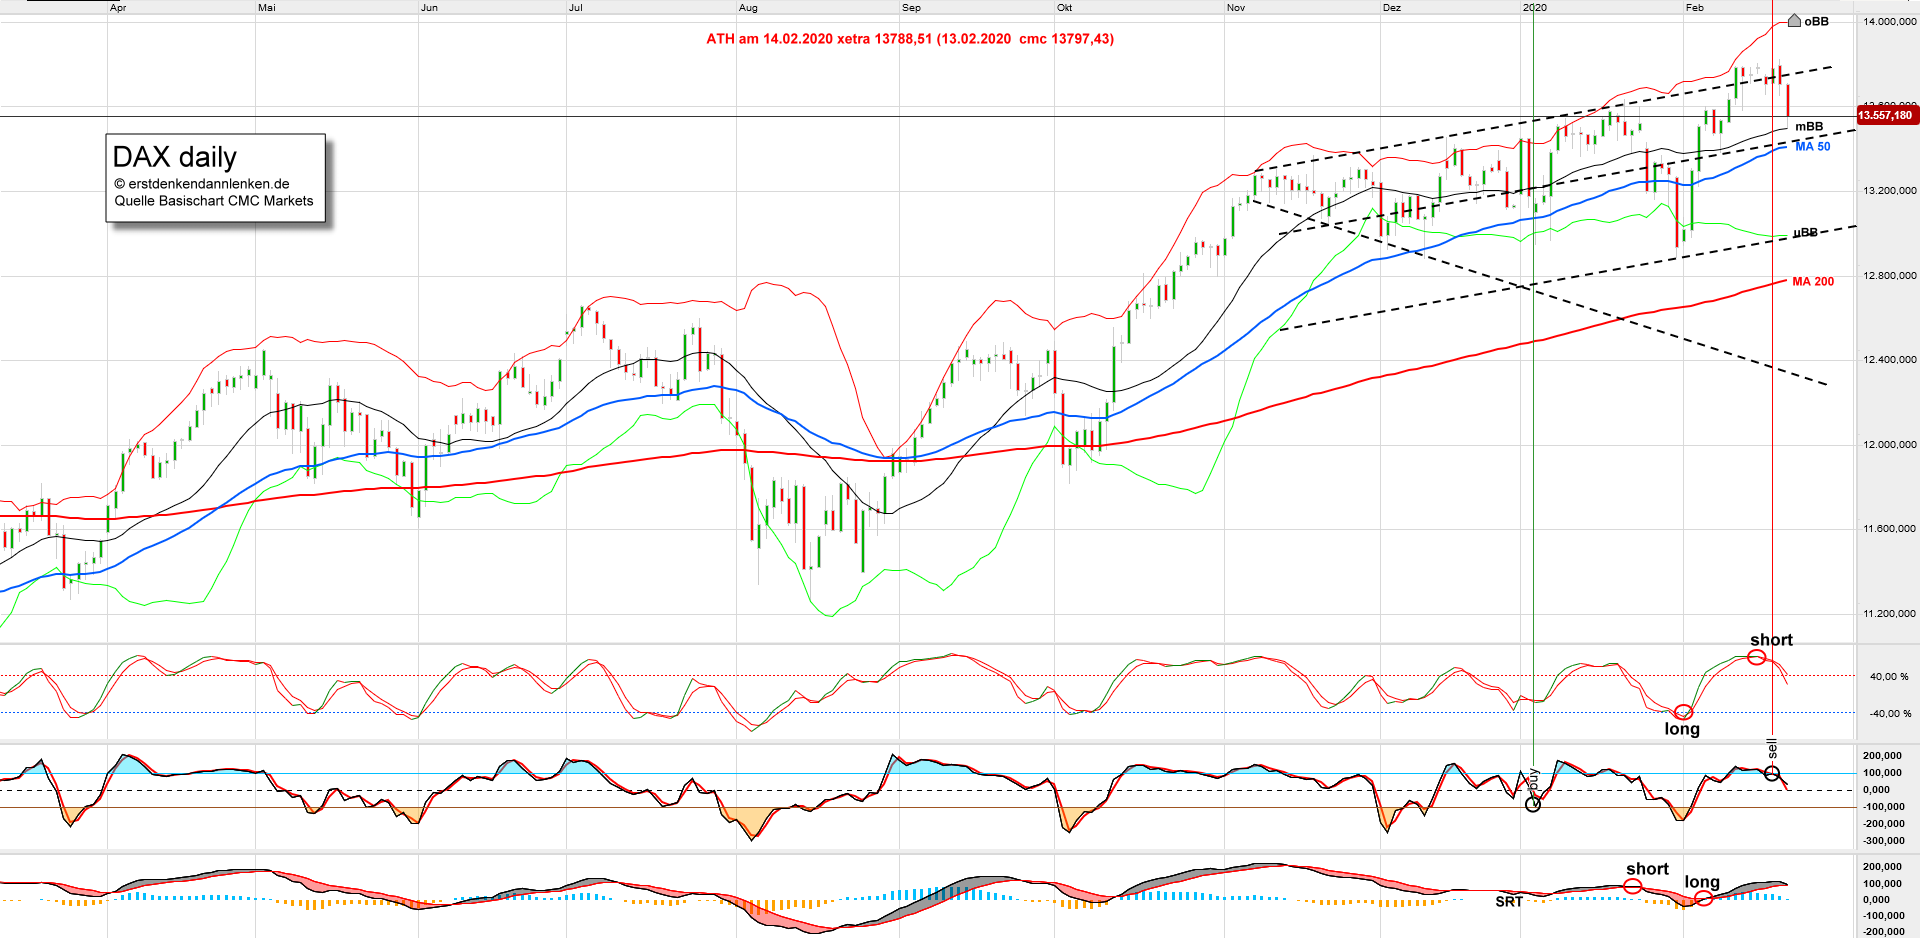 dax-daily.png